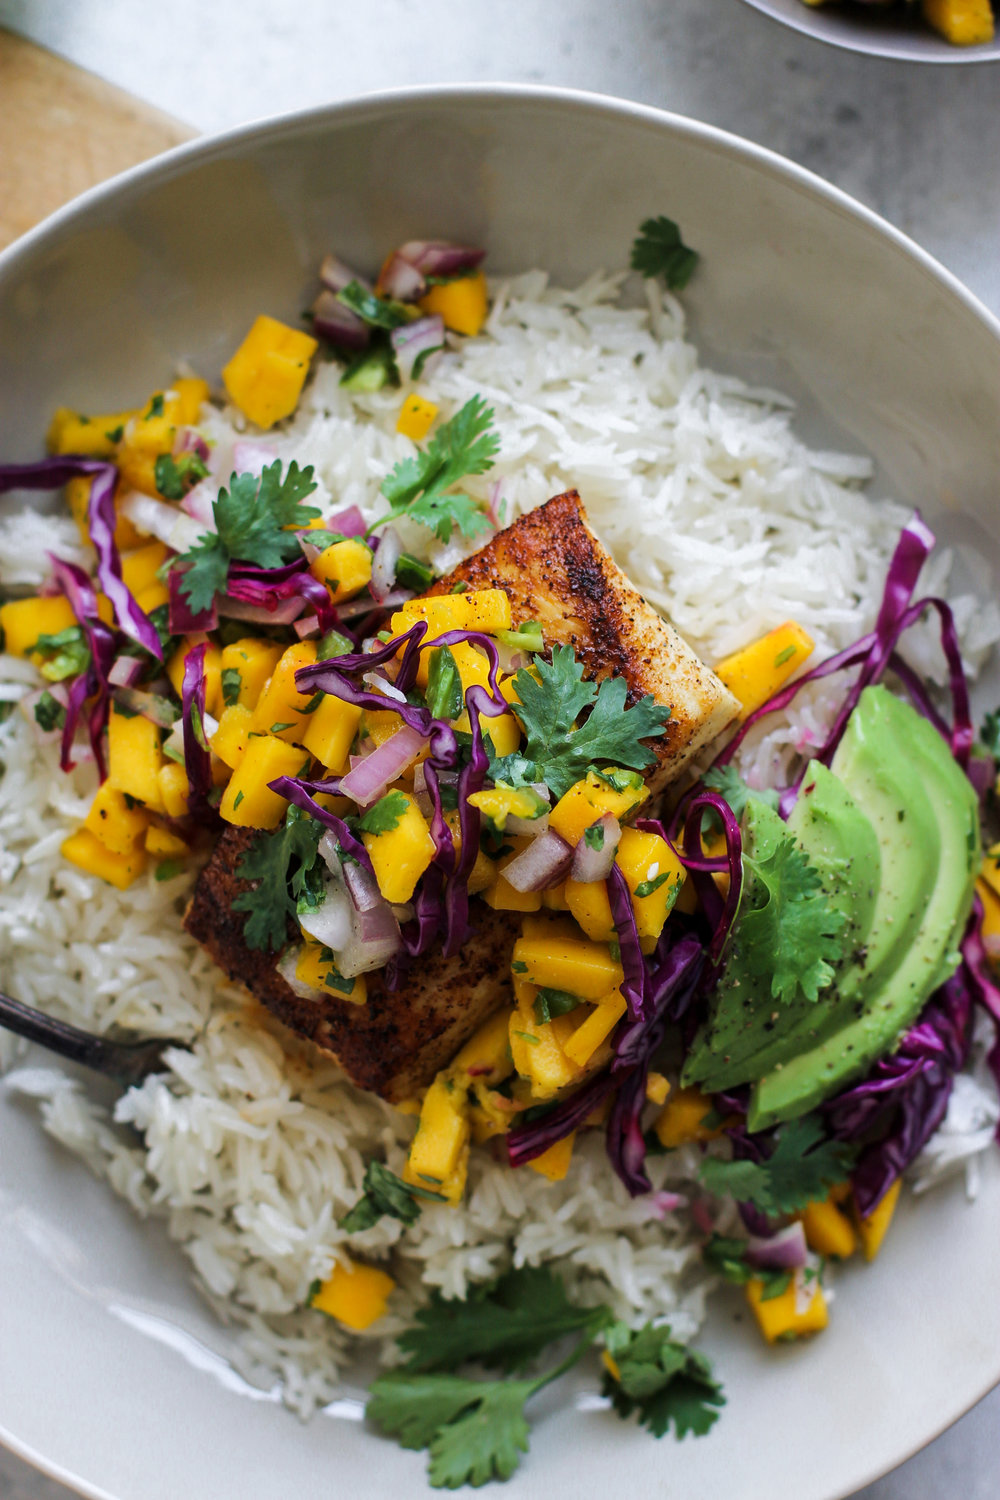 Coconut Rice Fish Taco Bowls with Mango Pico de Gallo: My Diary of Us